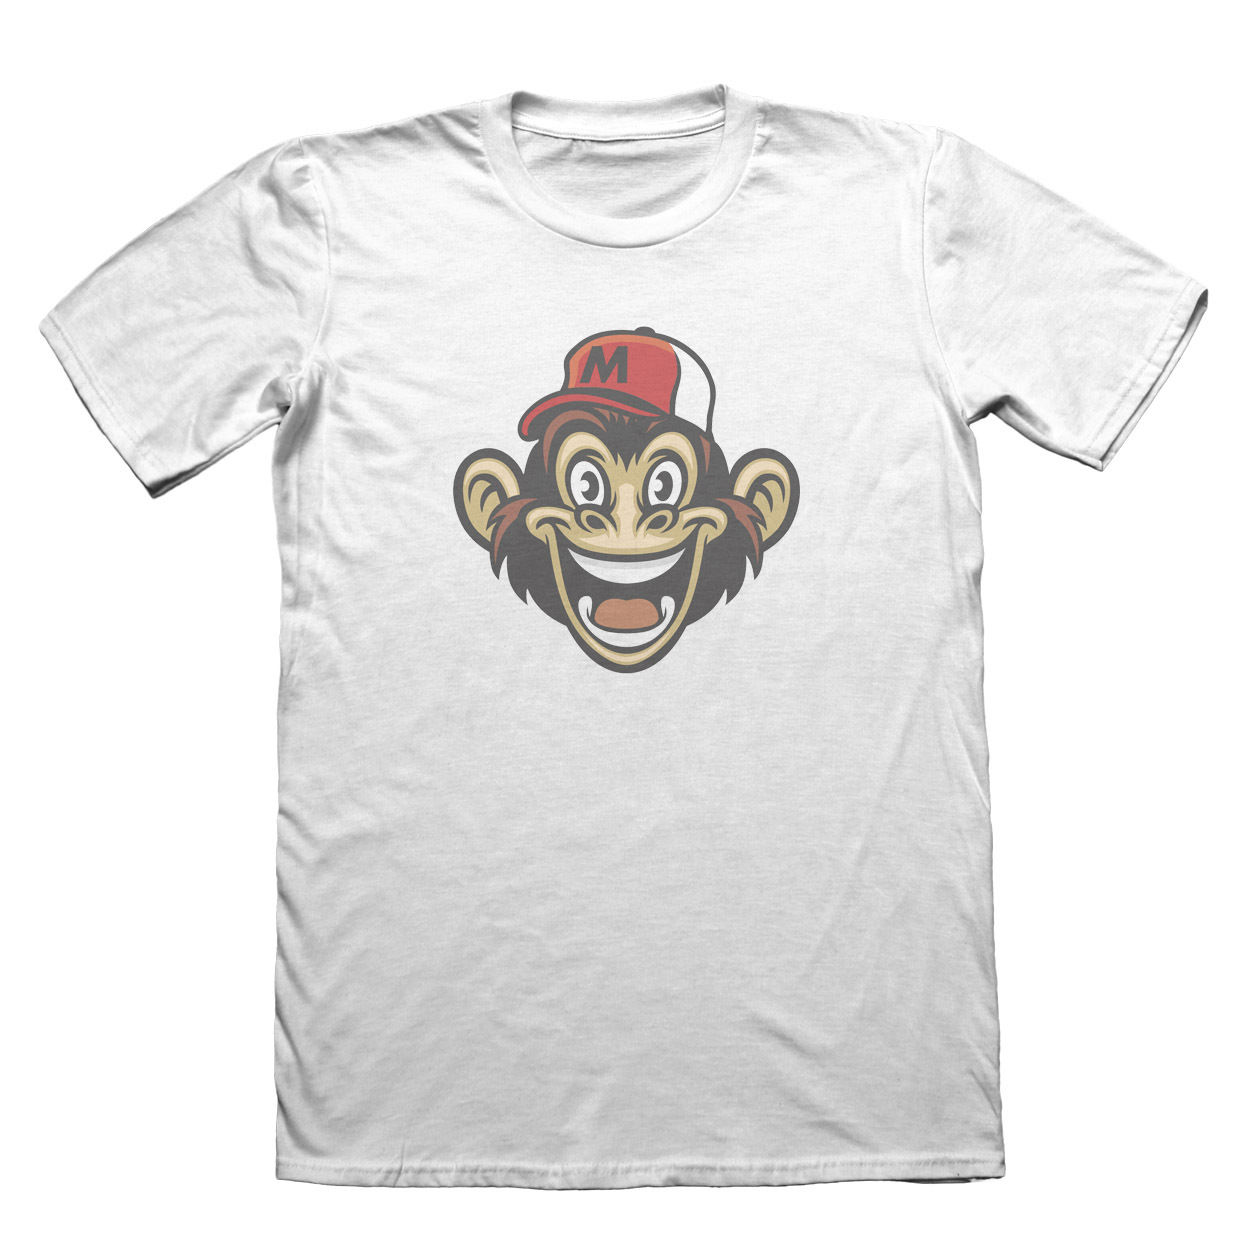 Monkey Design T-Shirt - Mens Fathers Day Christmas Gift #6038